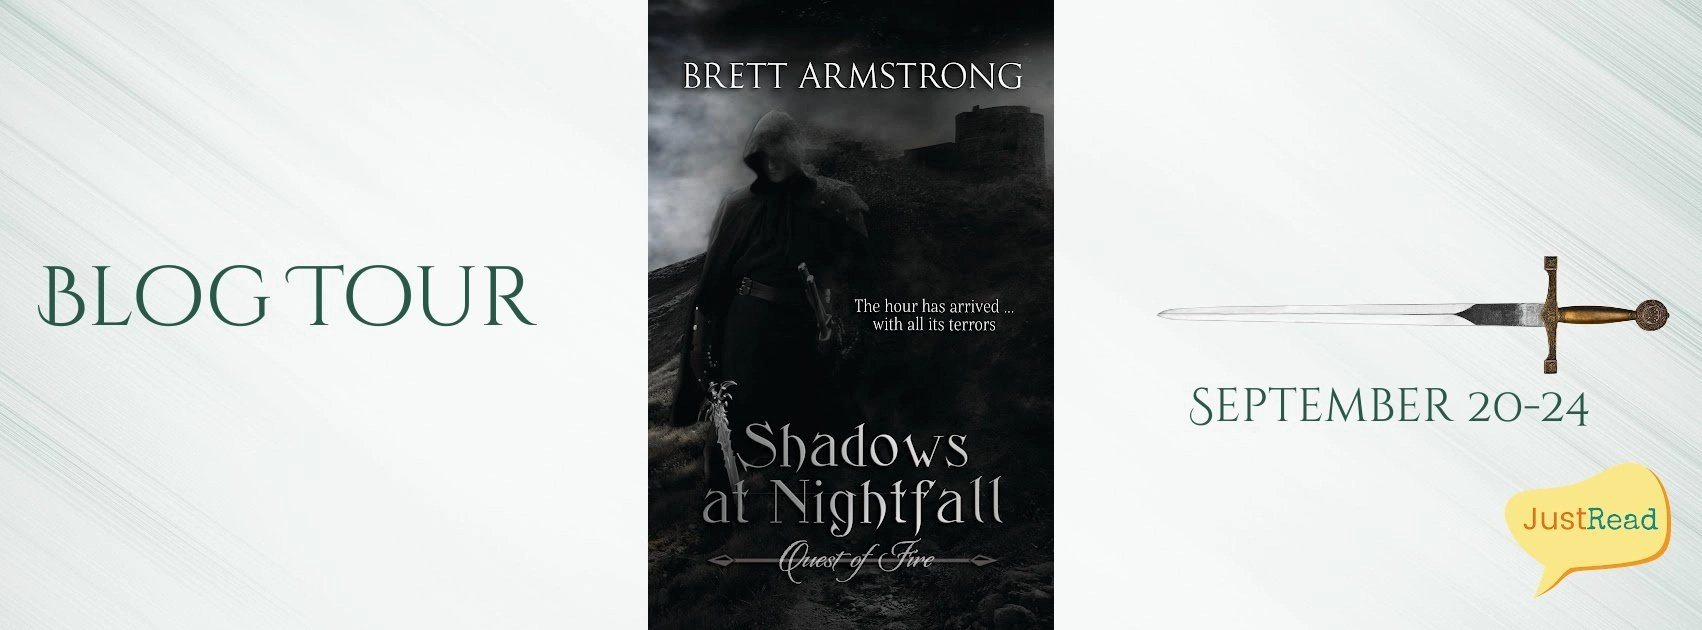 Welcome to the Shadows at Nightfall Blog Tour & Giveaway!